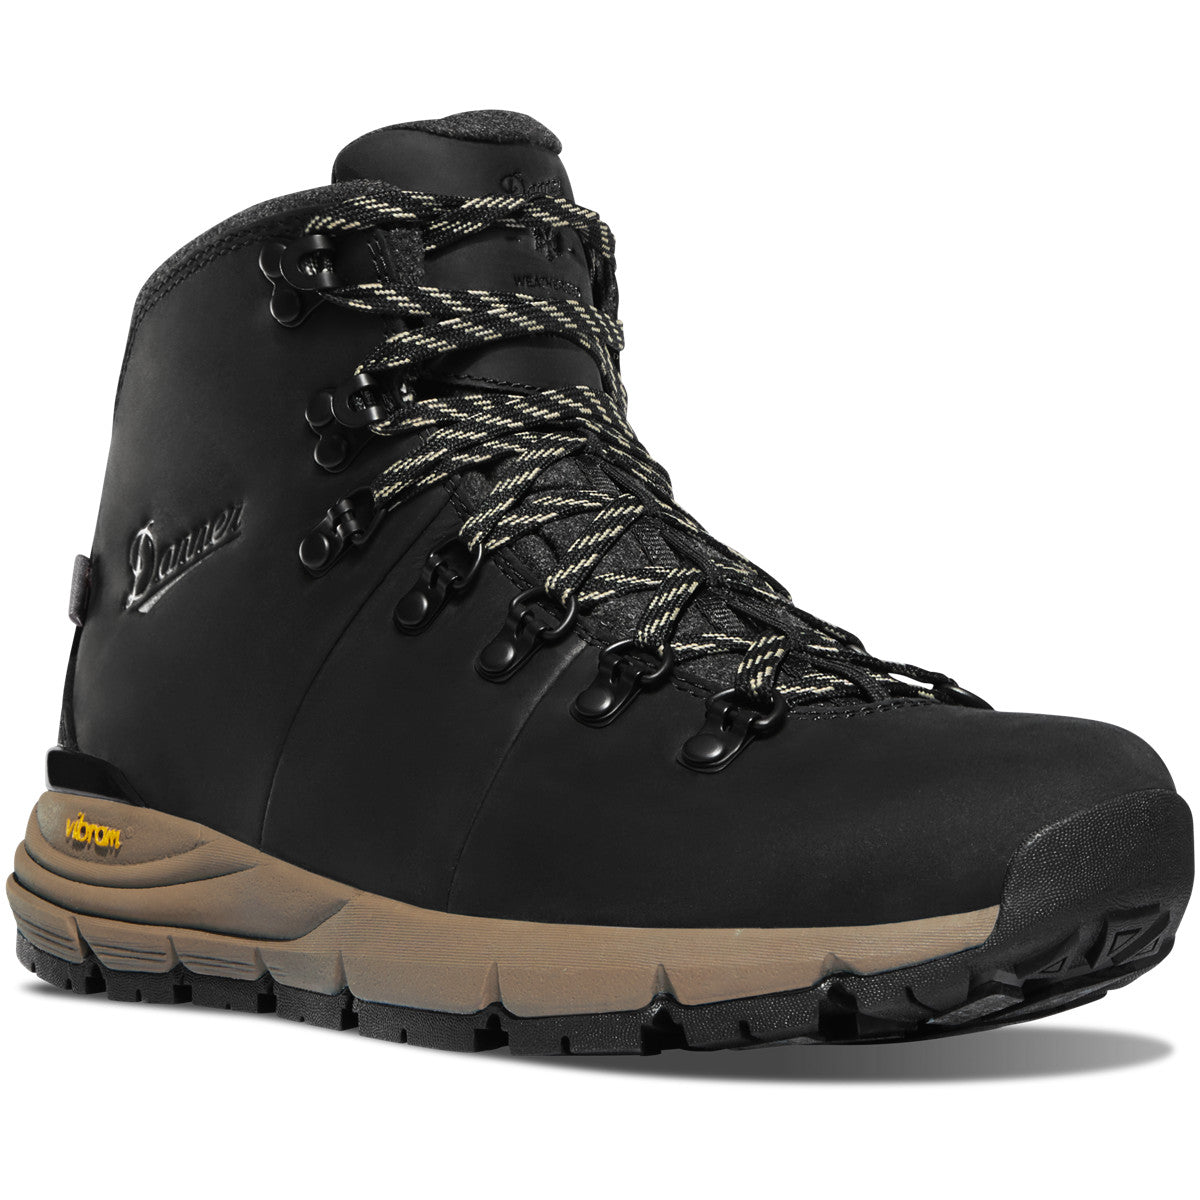 Mountain 600 Insulated - Women's